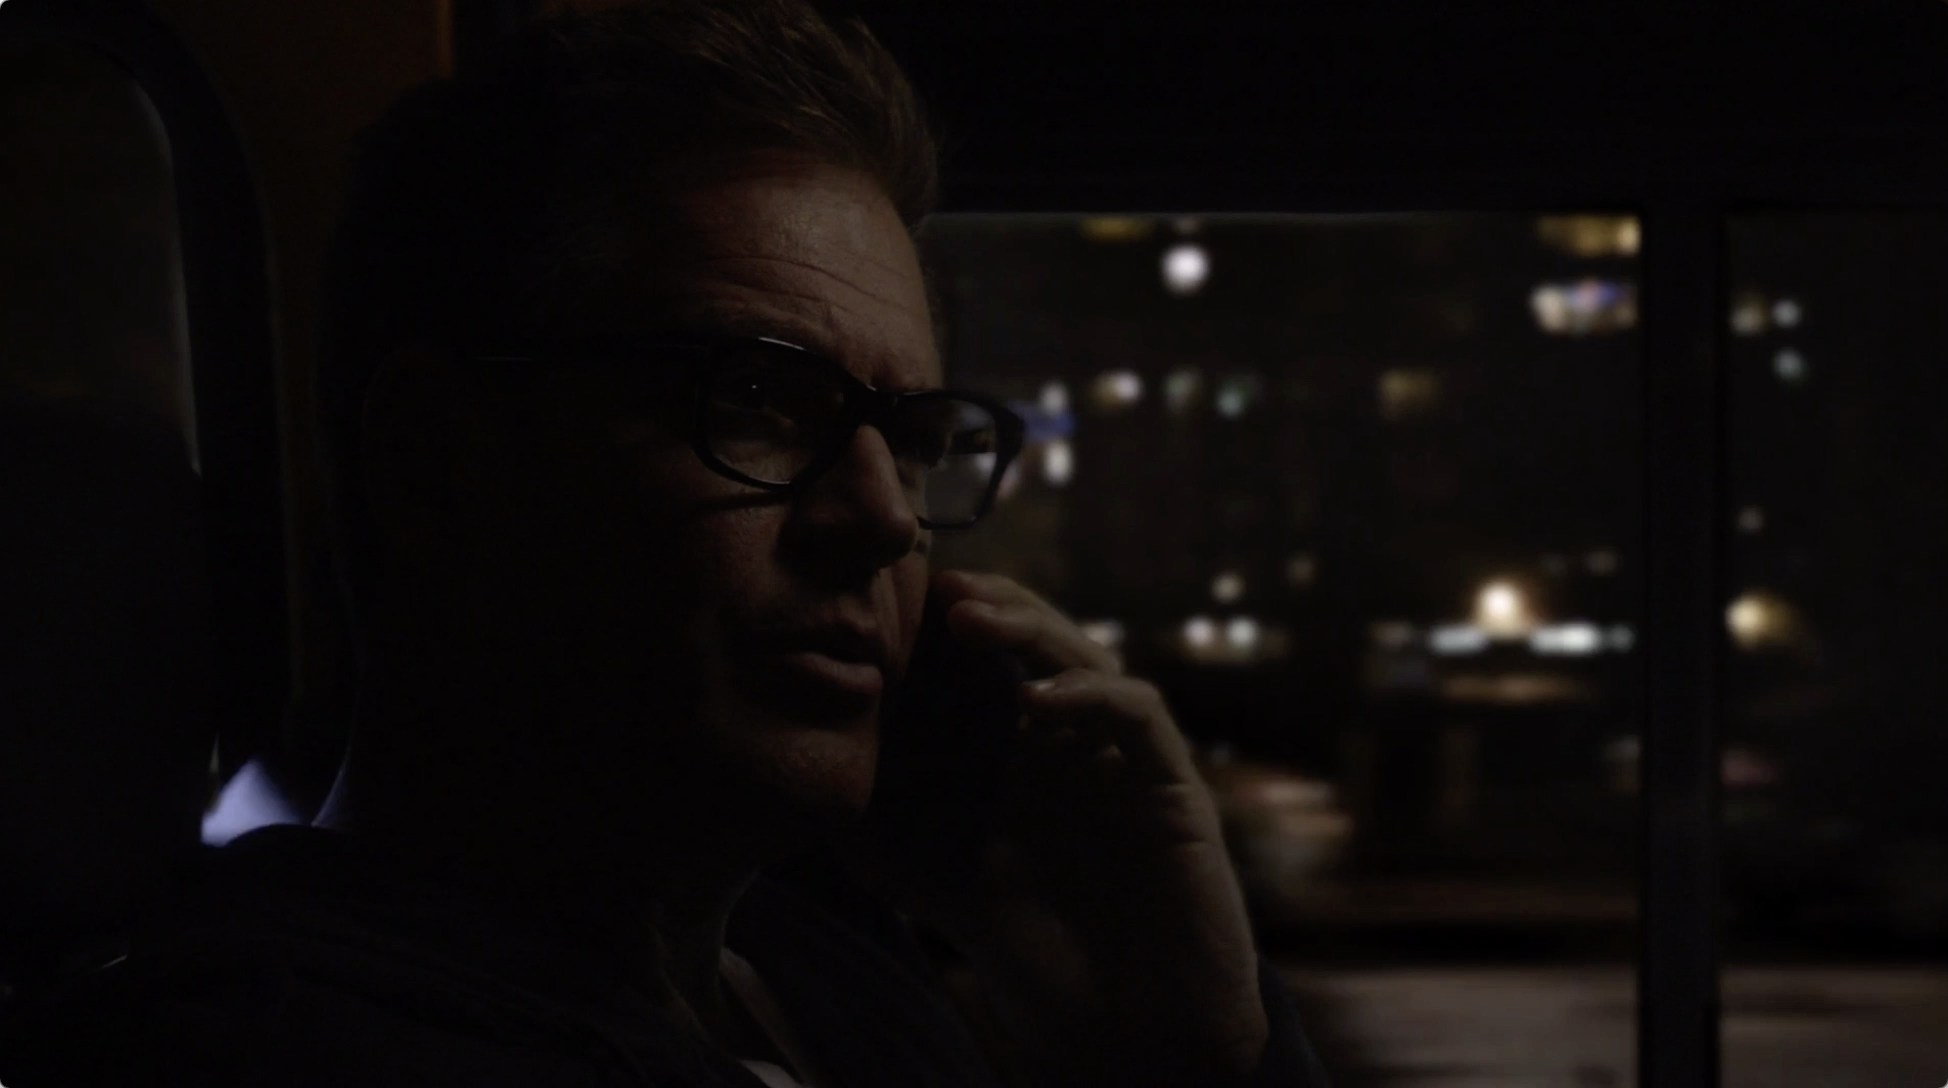 Bull Driving Footage New York City S03E01 2.png